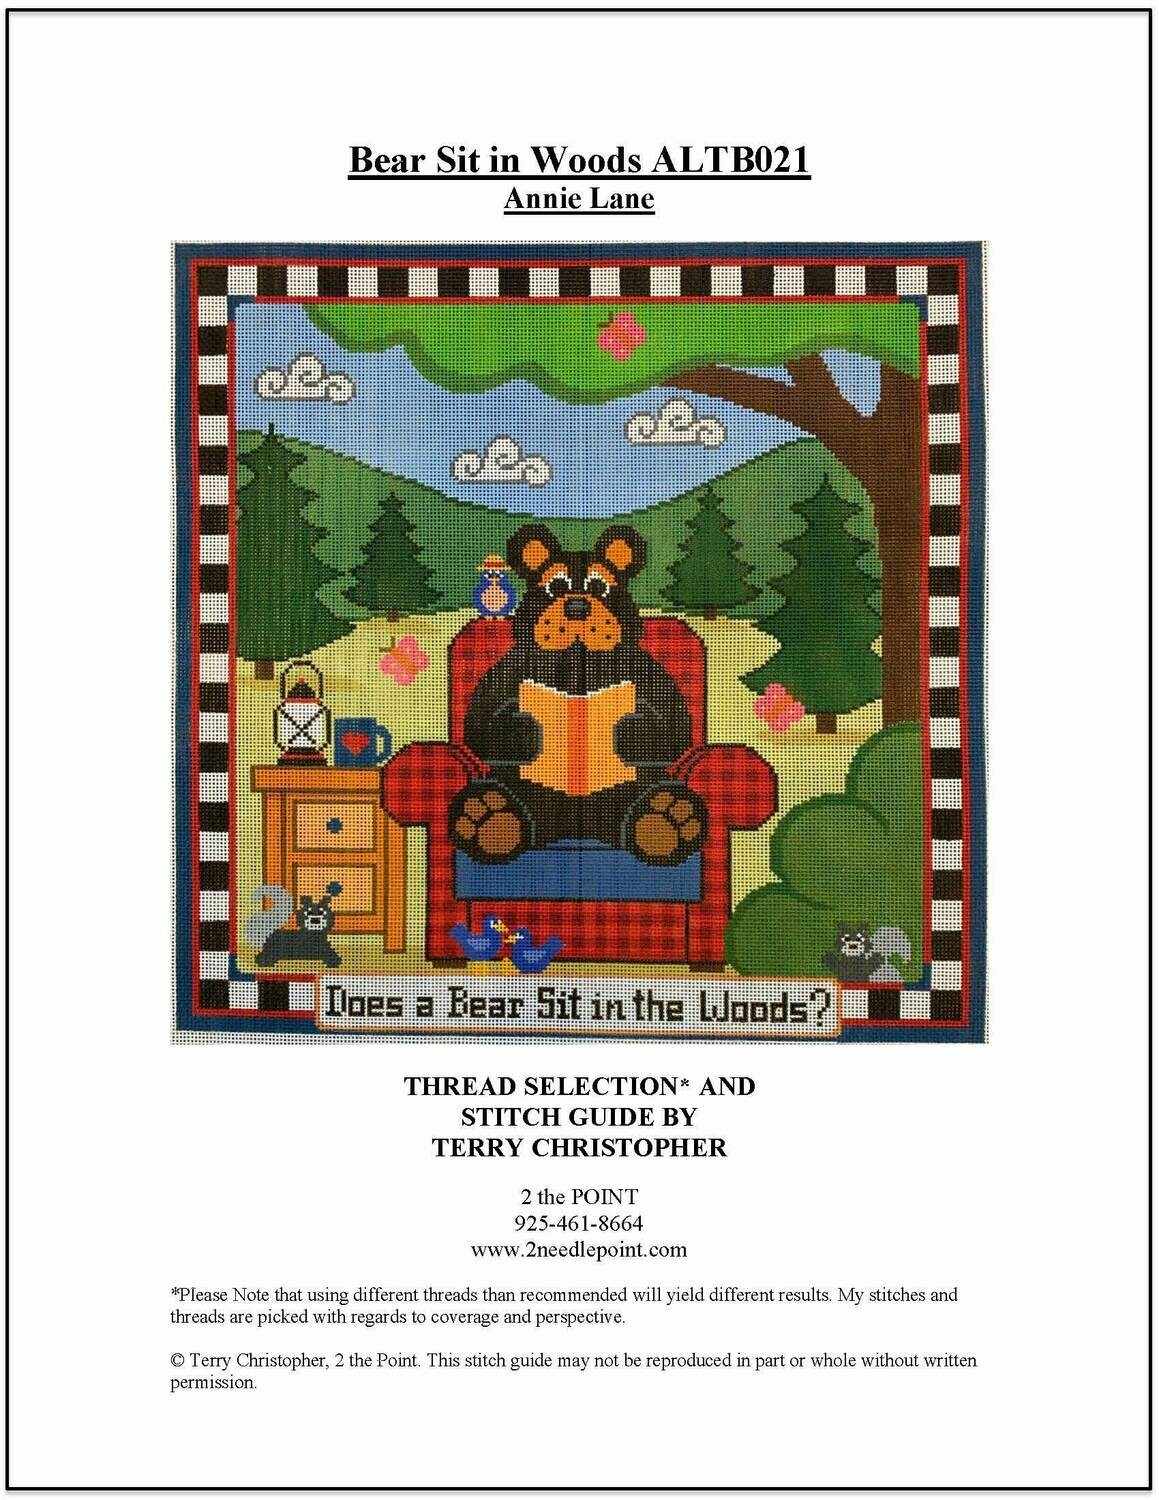 Annie Lane, Bear Sits in the Woods ALTB021